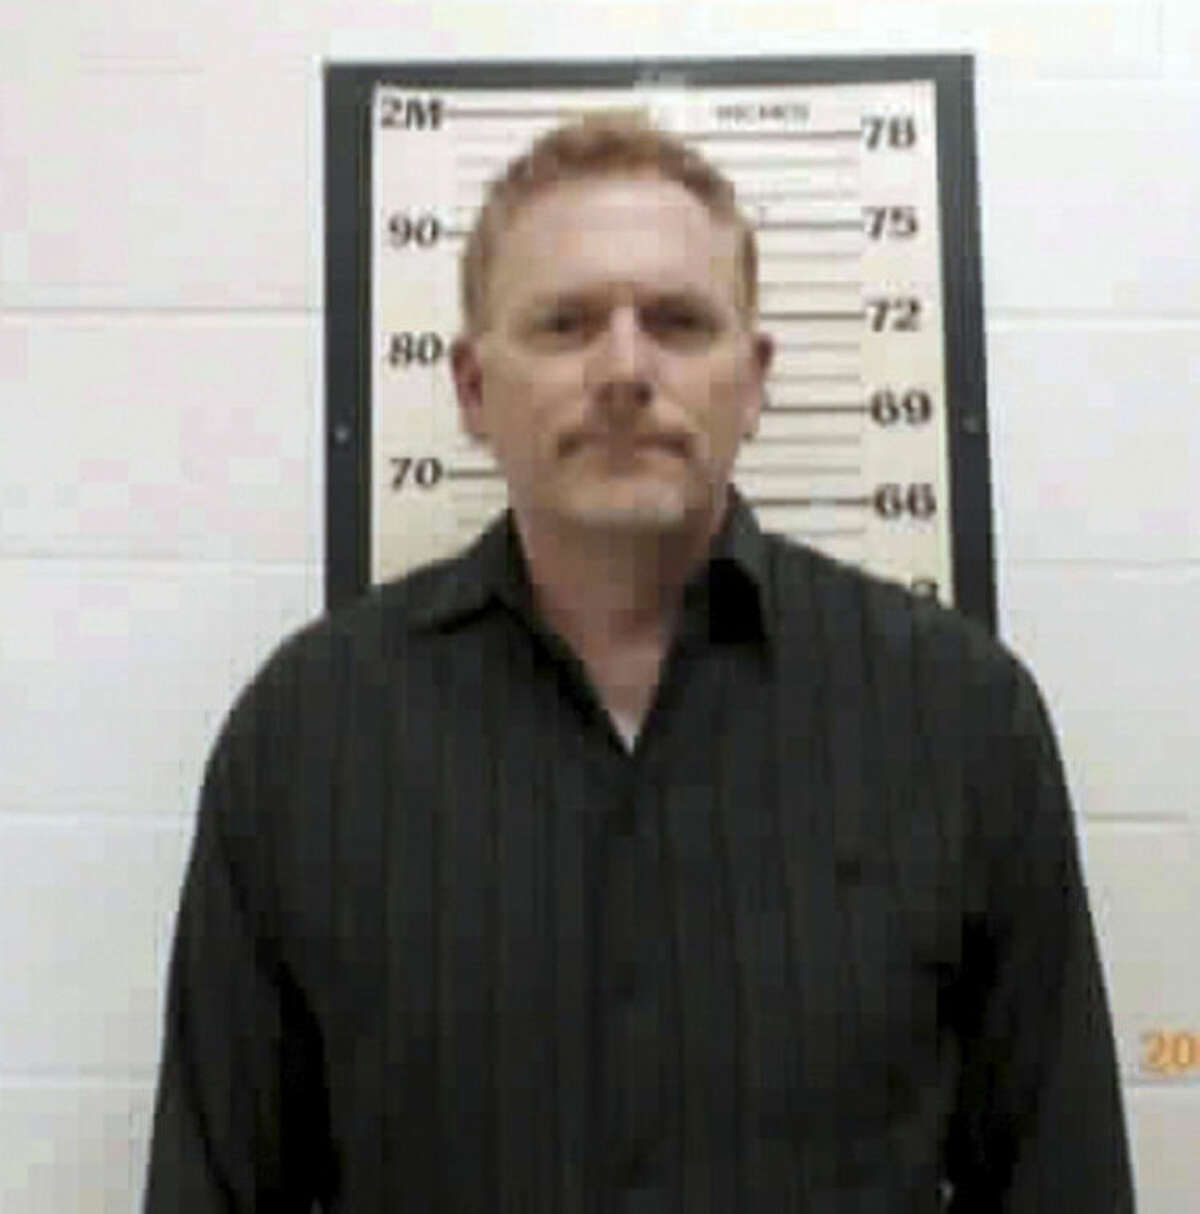 In this Sunday, July 13, 2014 photo released by the Wayne County Sheriff, Randall Miller poses for a photo. ?